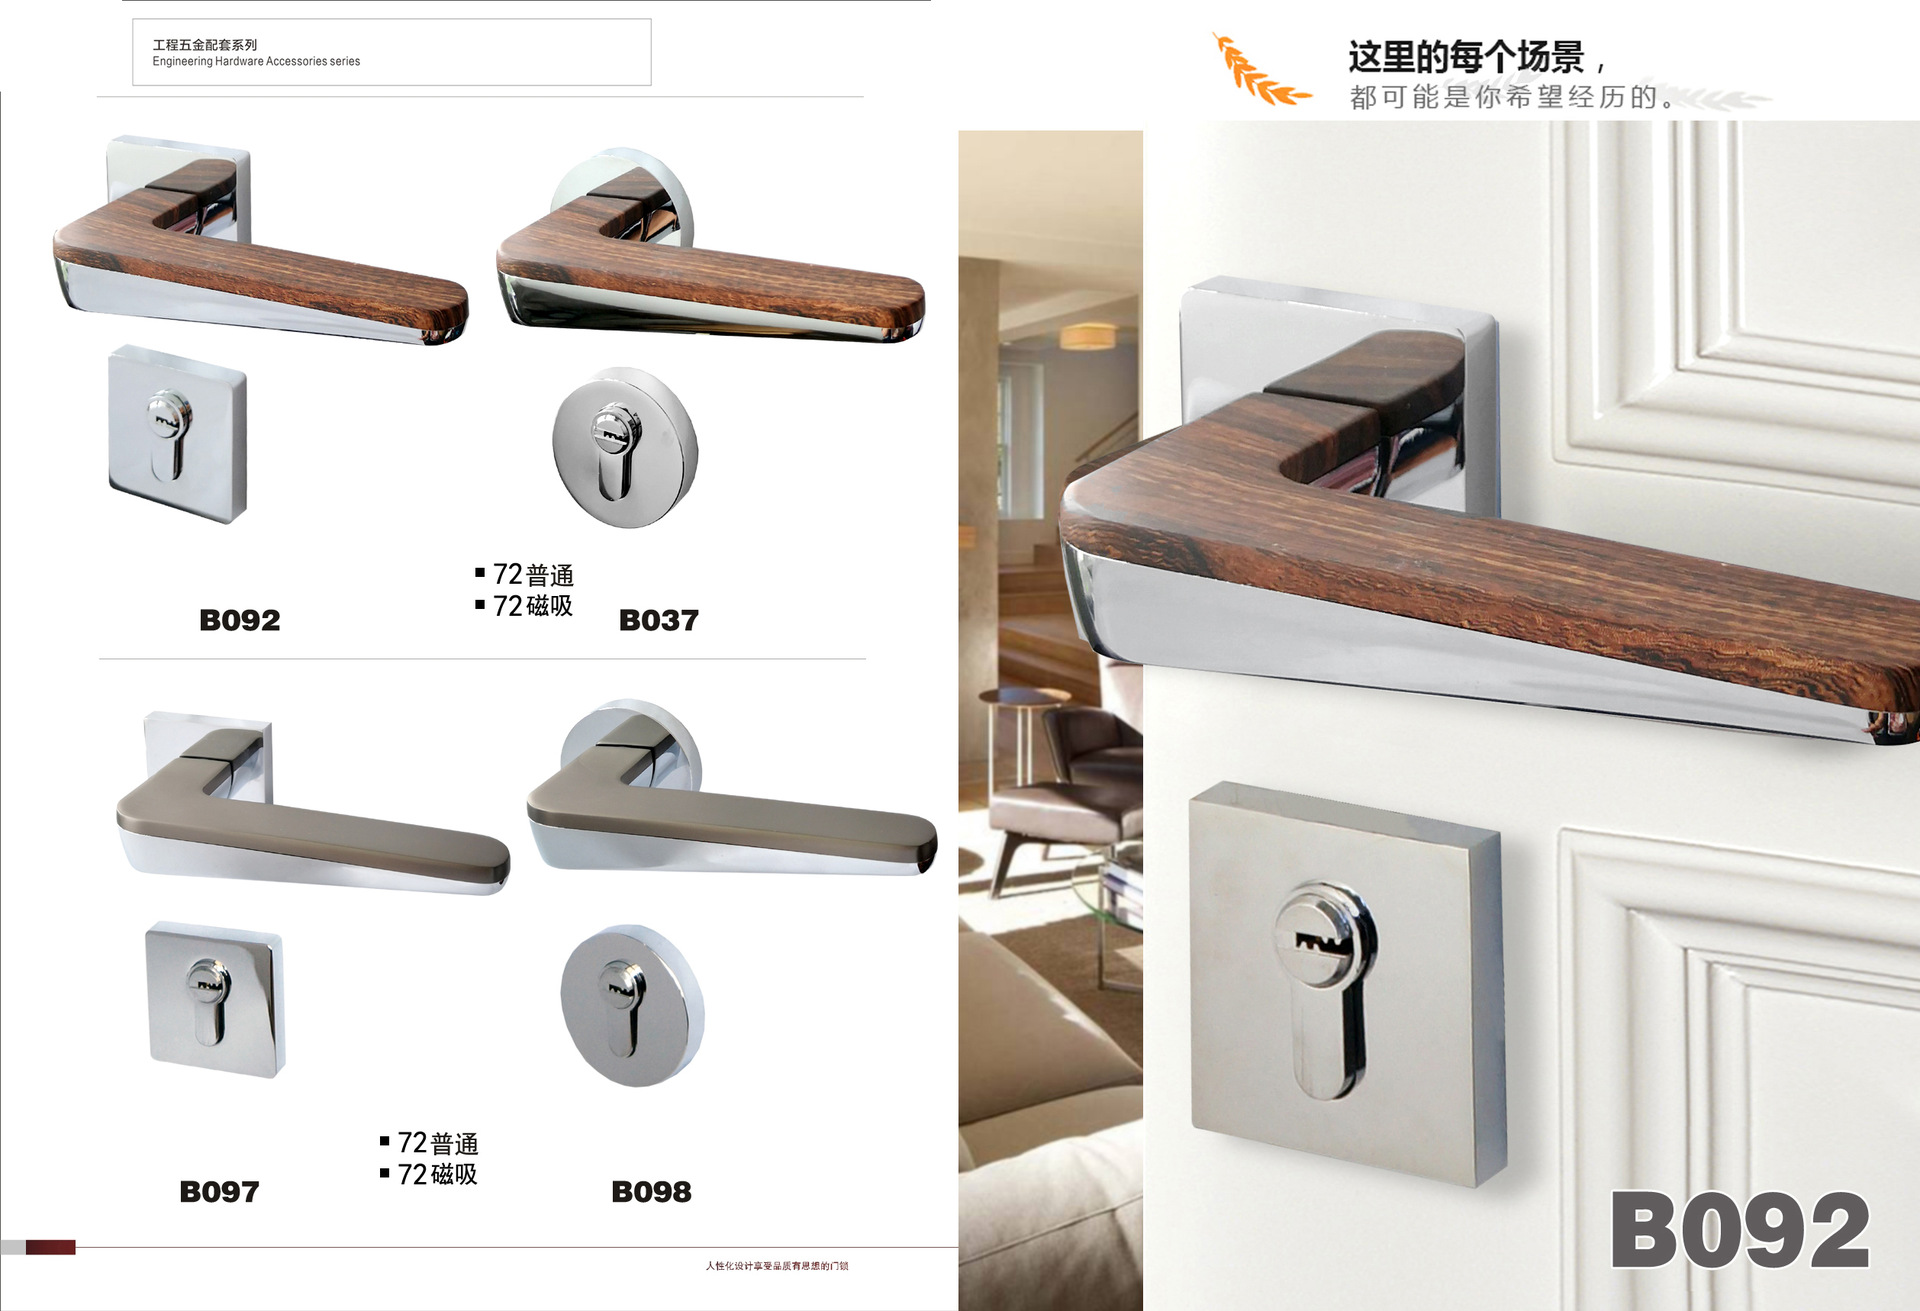 2018 Sale Real Fechadura Bedroom, European And American Magnetic Suction Mute Door Lock, Zinc Alloy, Bright Luoyang Style Lock.